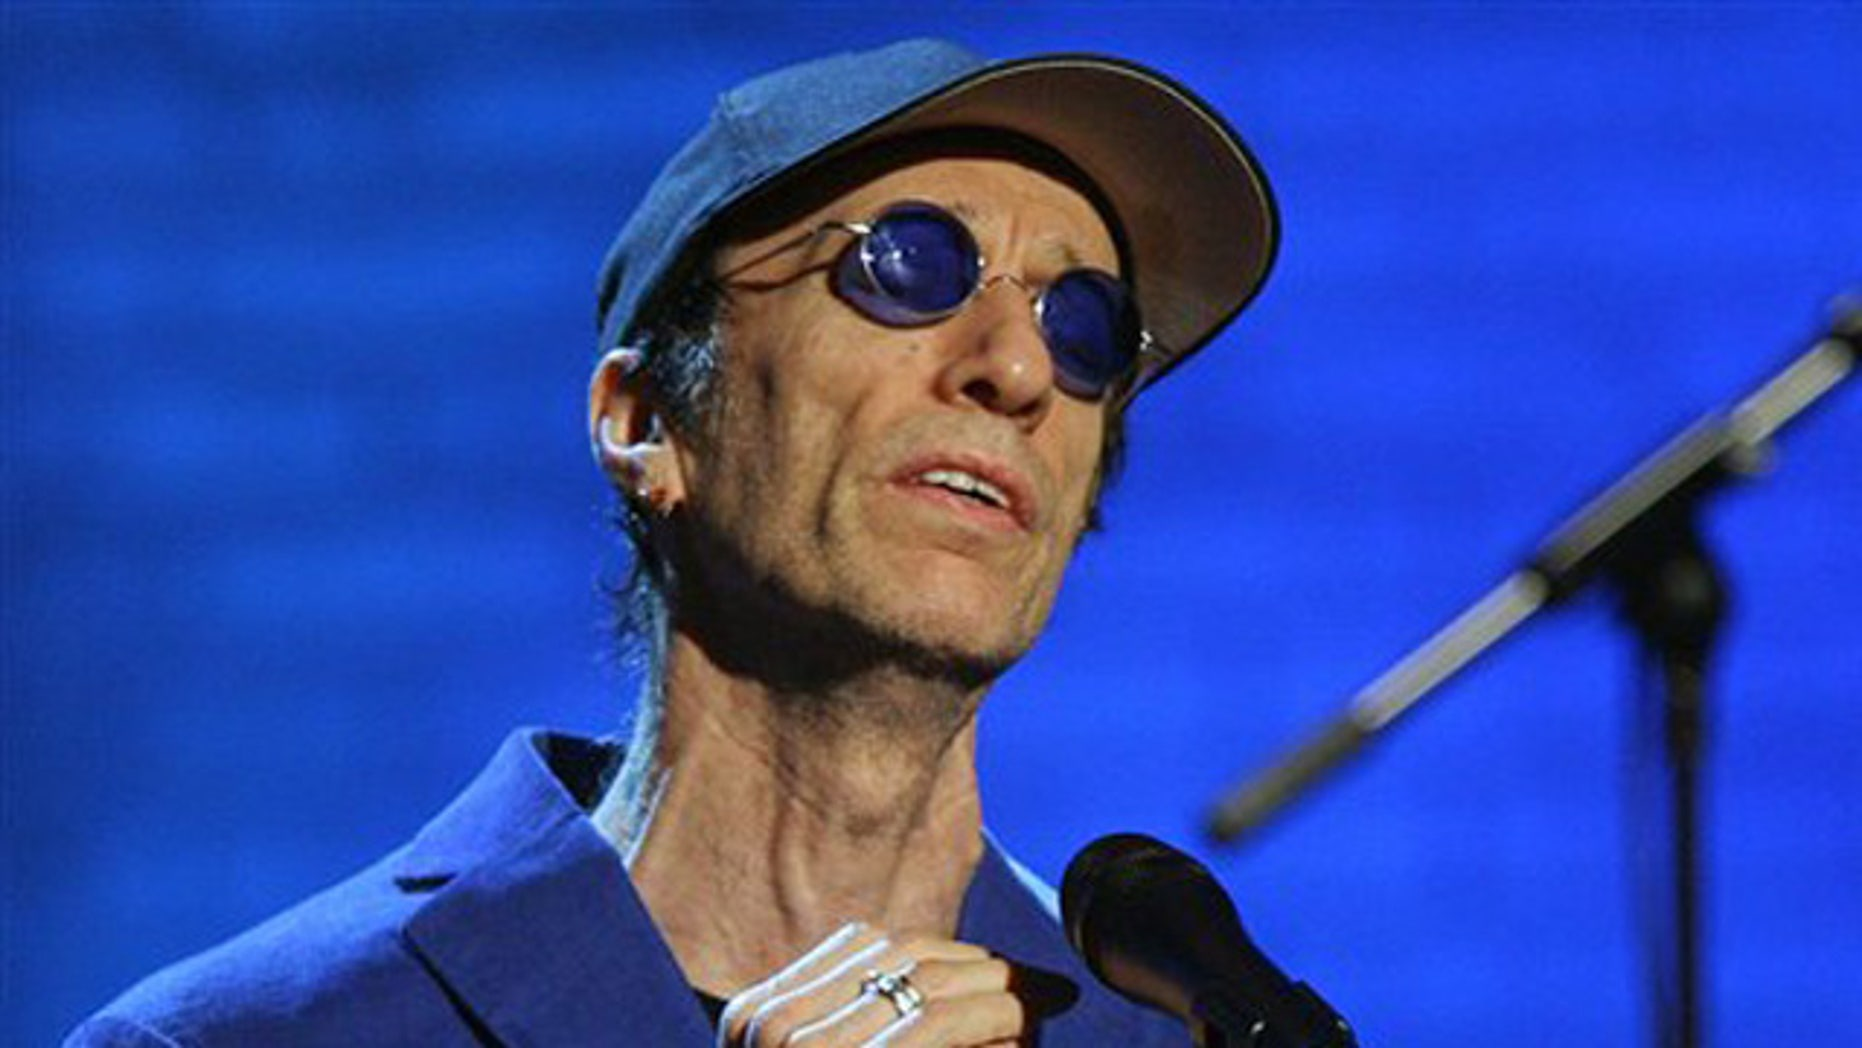 """Dec. 14, 2006: In this file photo, Robin Gibb performs during the """"Jose Carreras Gala"""" rehearsal in Leipzig, eastern Germany."""